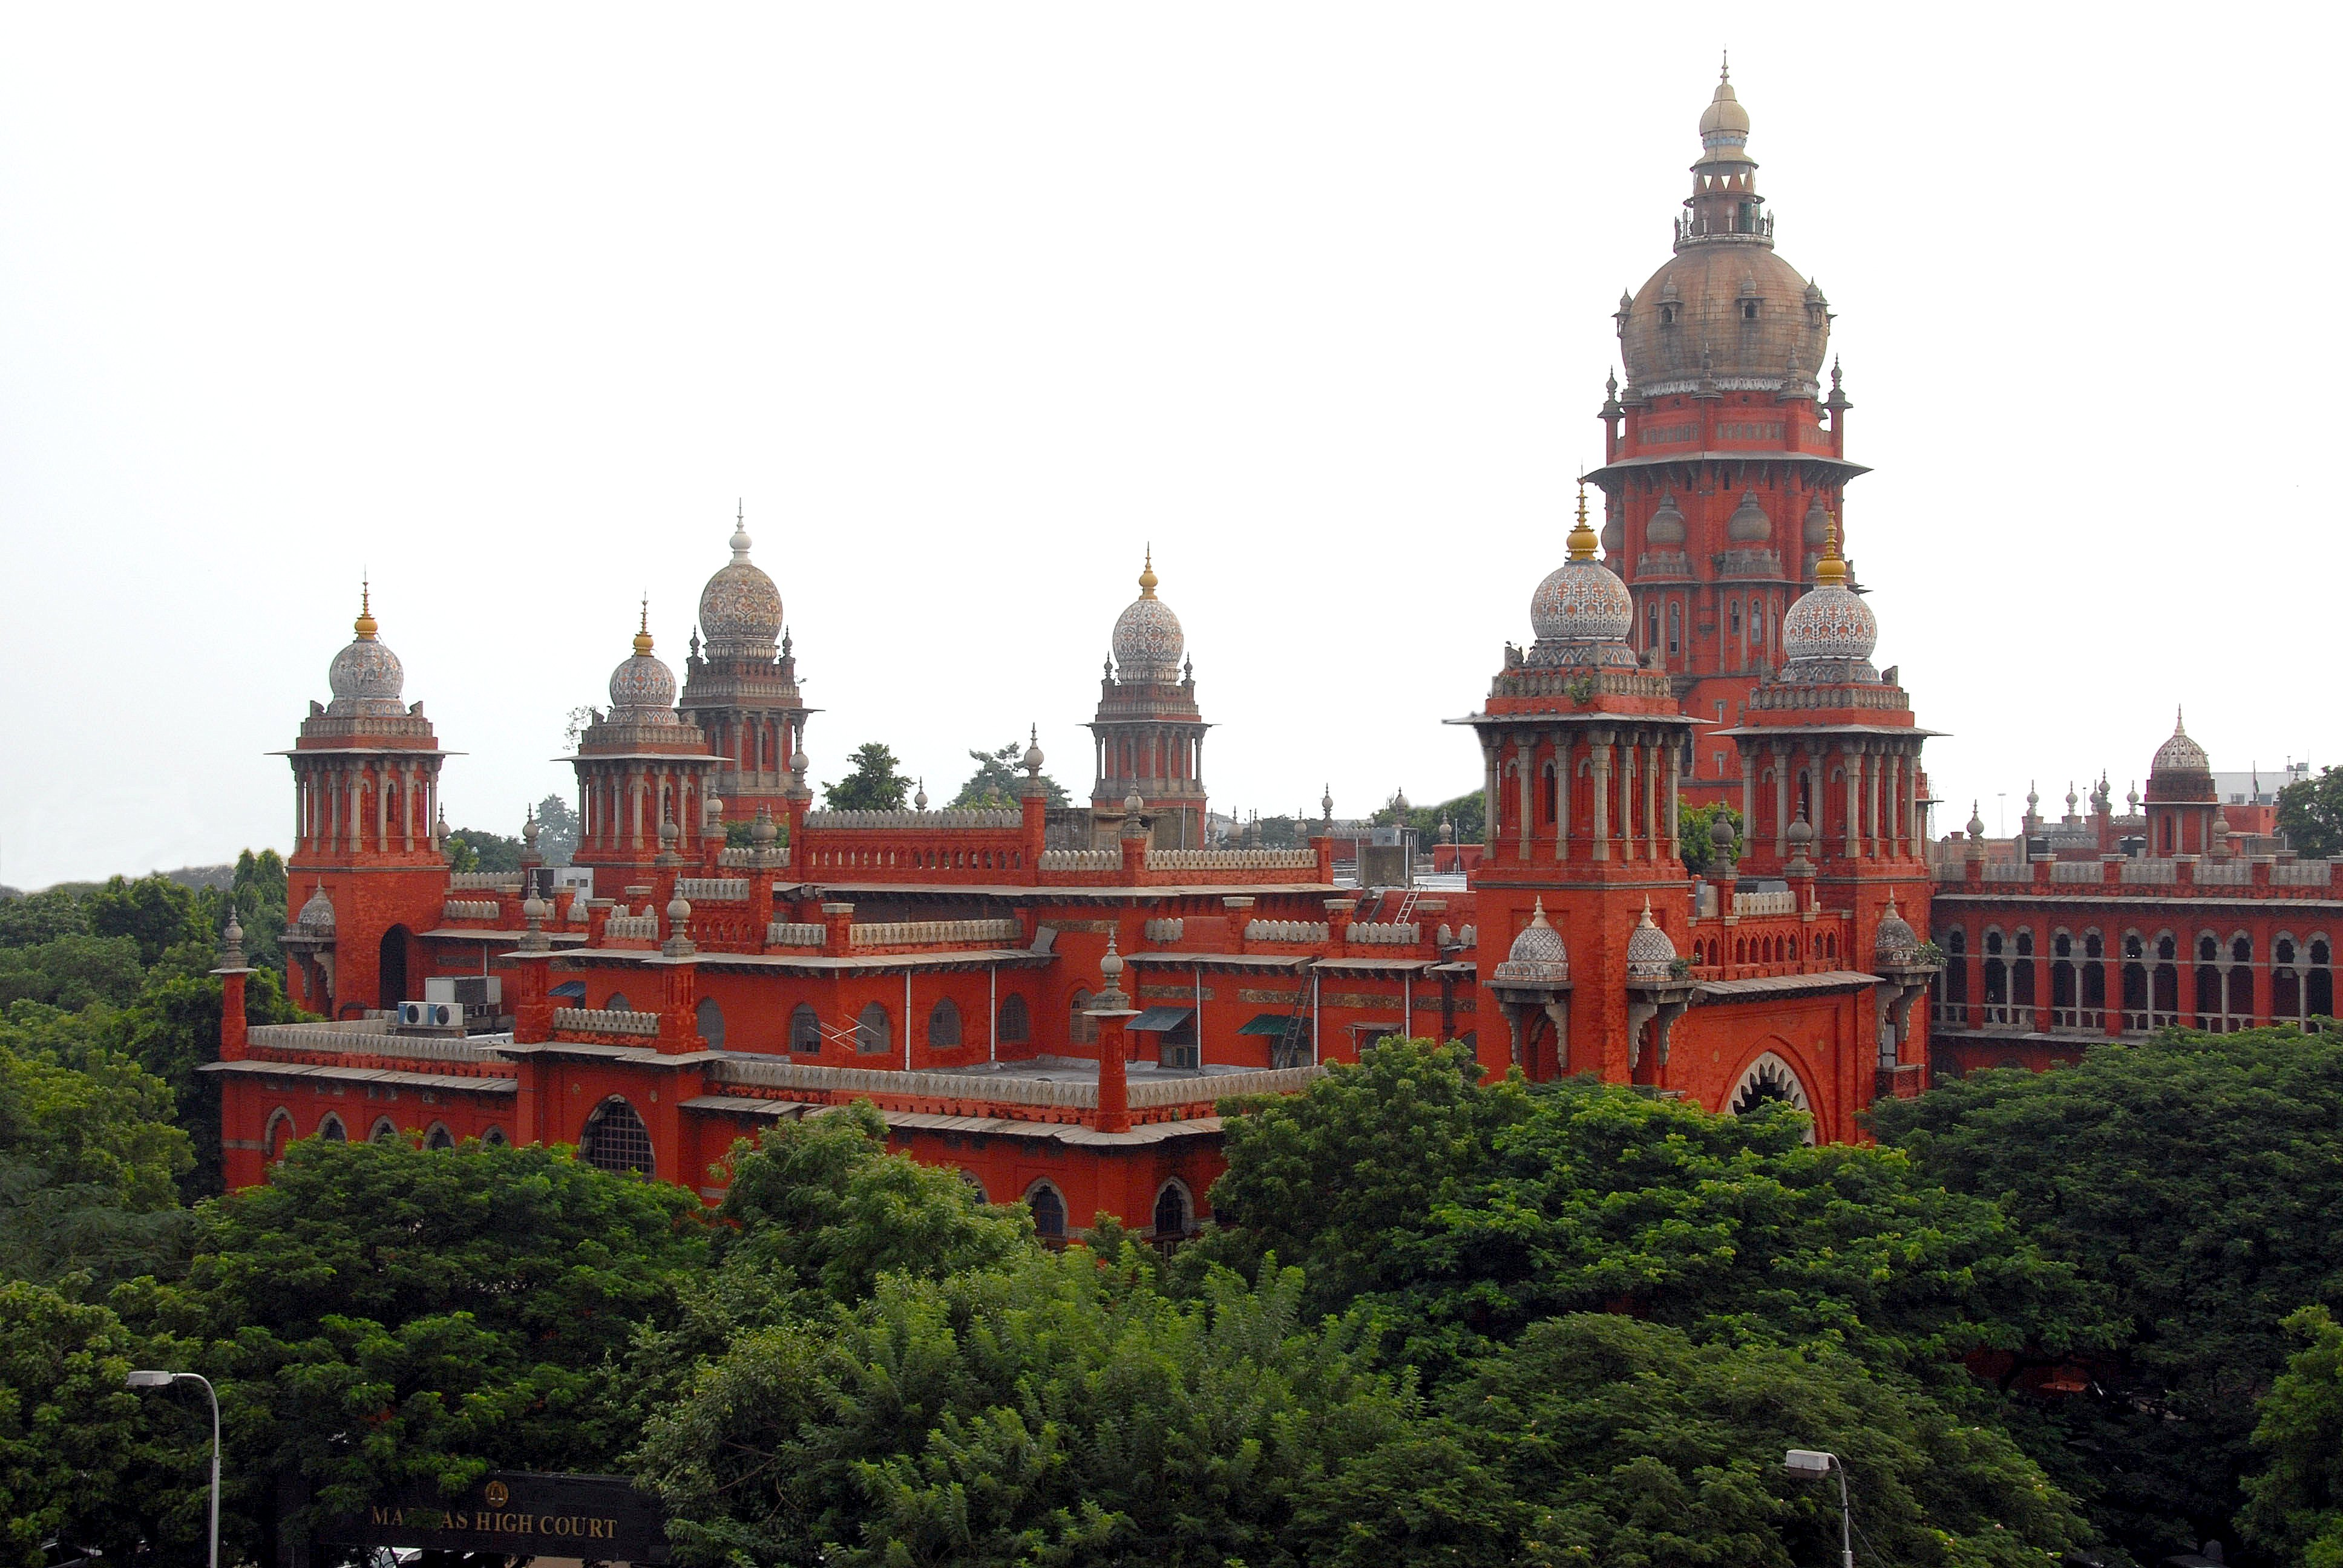 Madras High Court. Credit: Wikipedia Commons